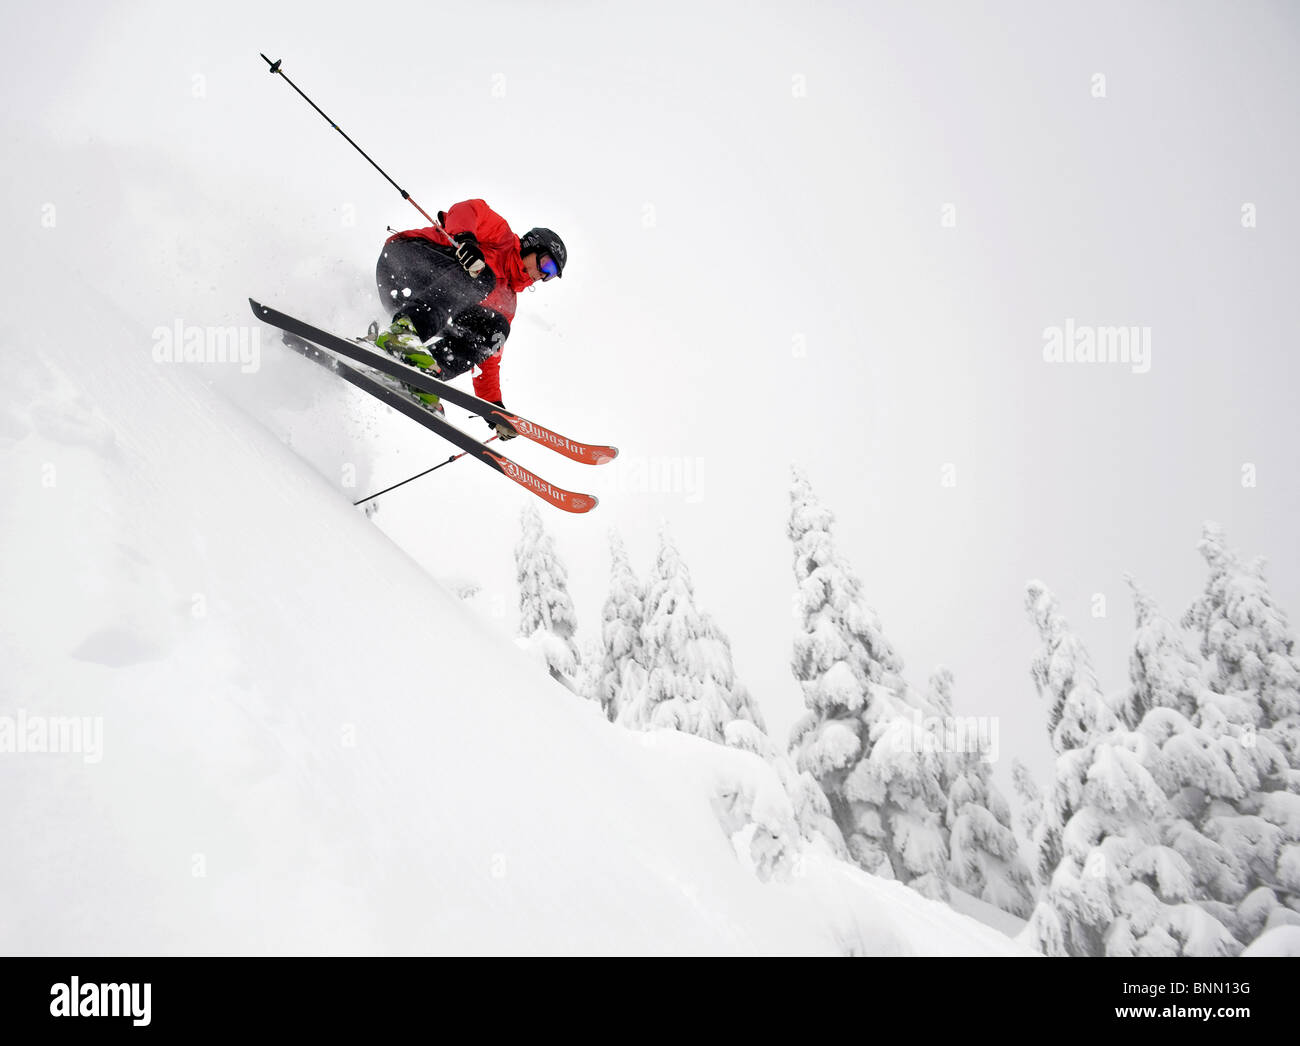 A skier gets a little air while skiing downhill at the Eaglecrest Ski area in Juneau, Alaska - Stock Image